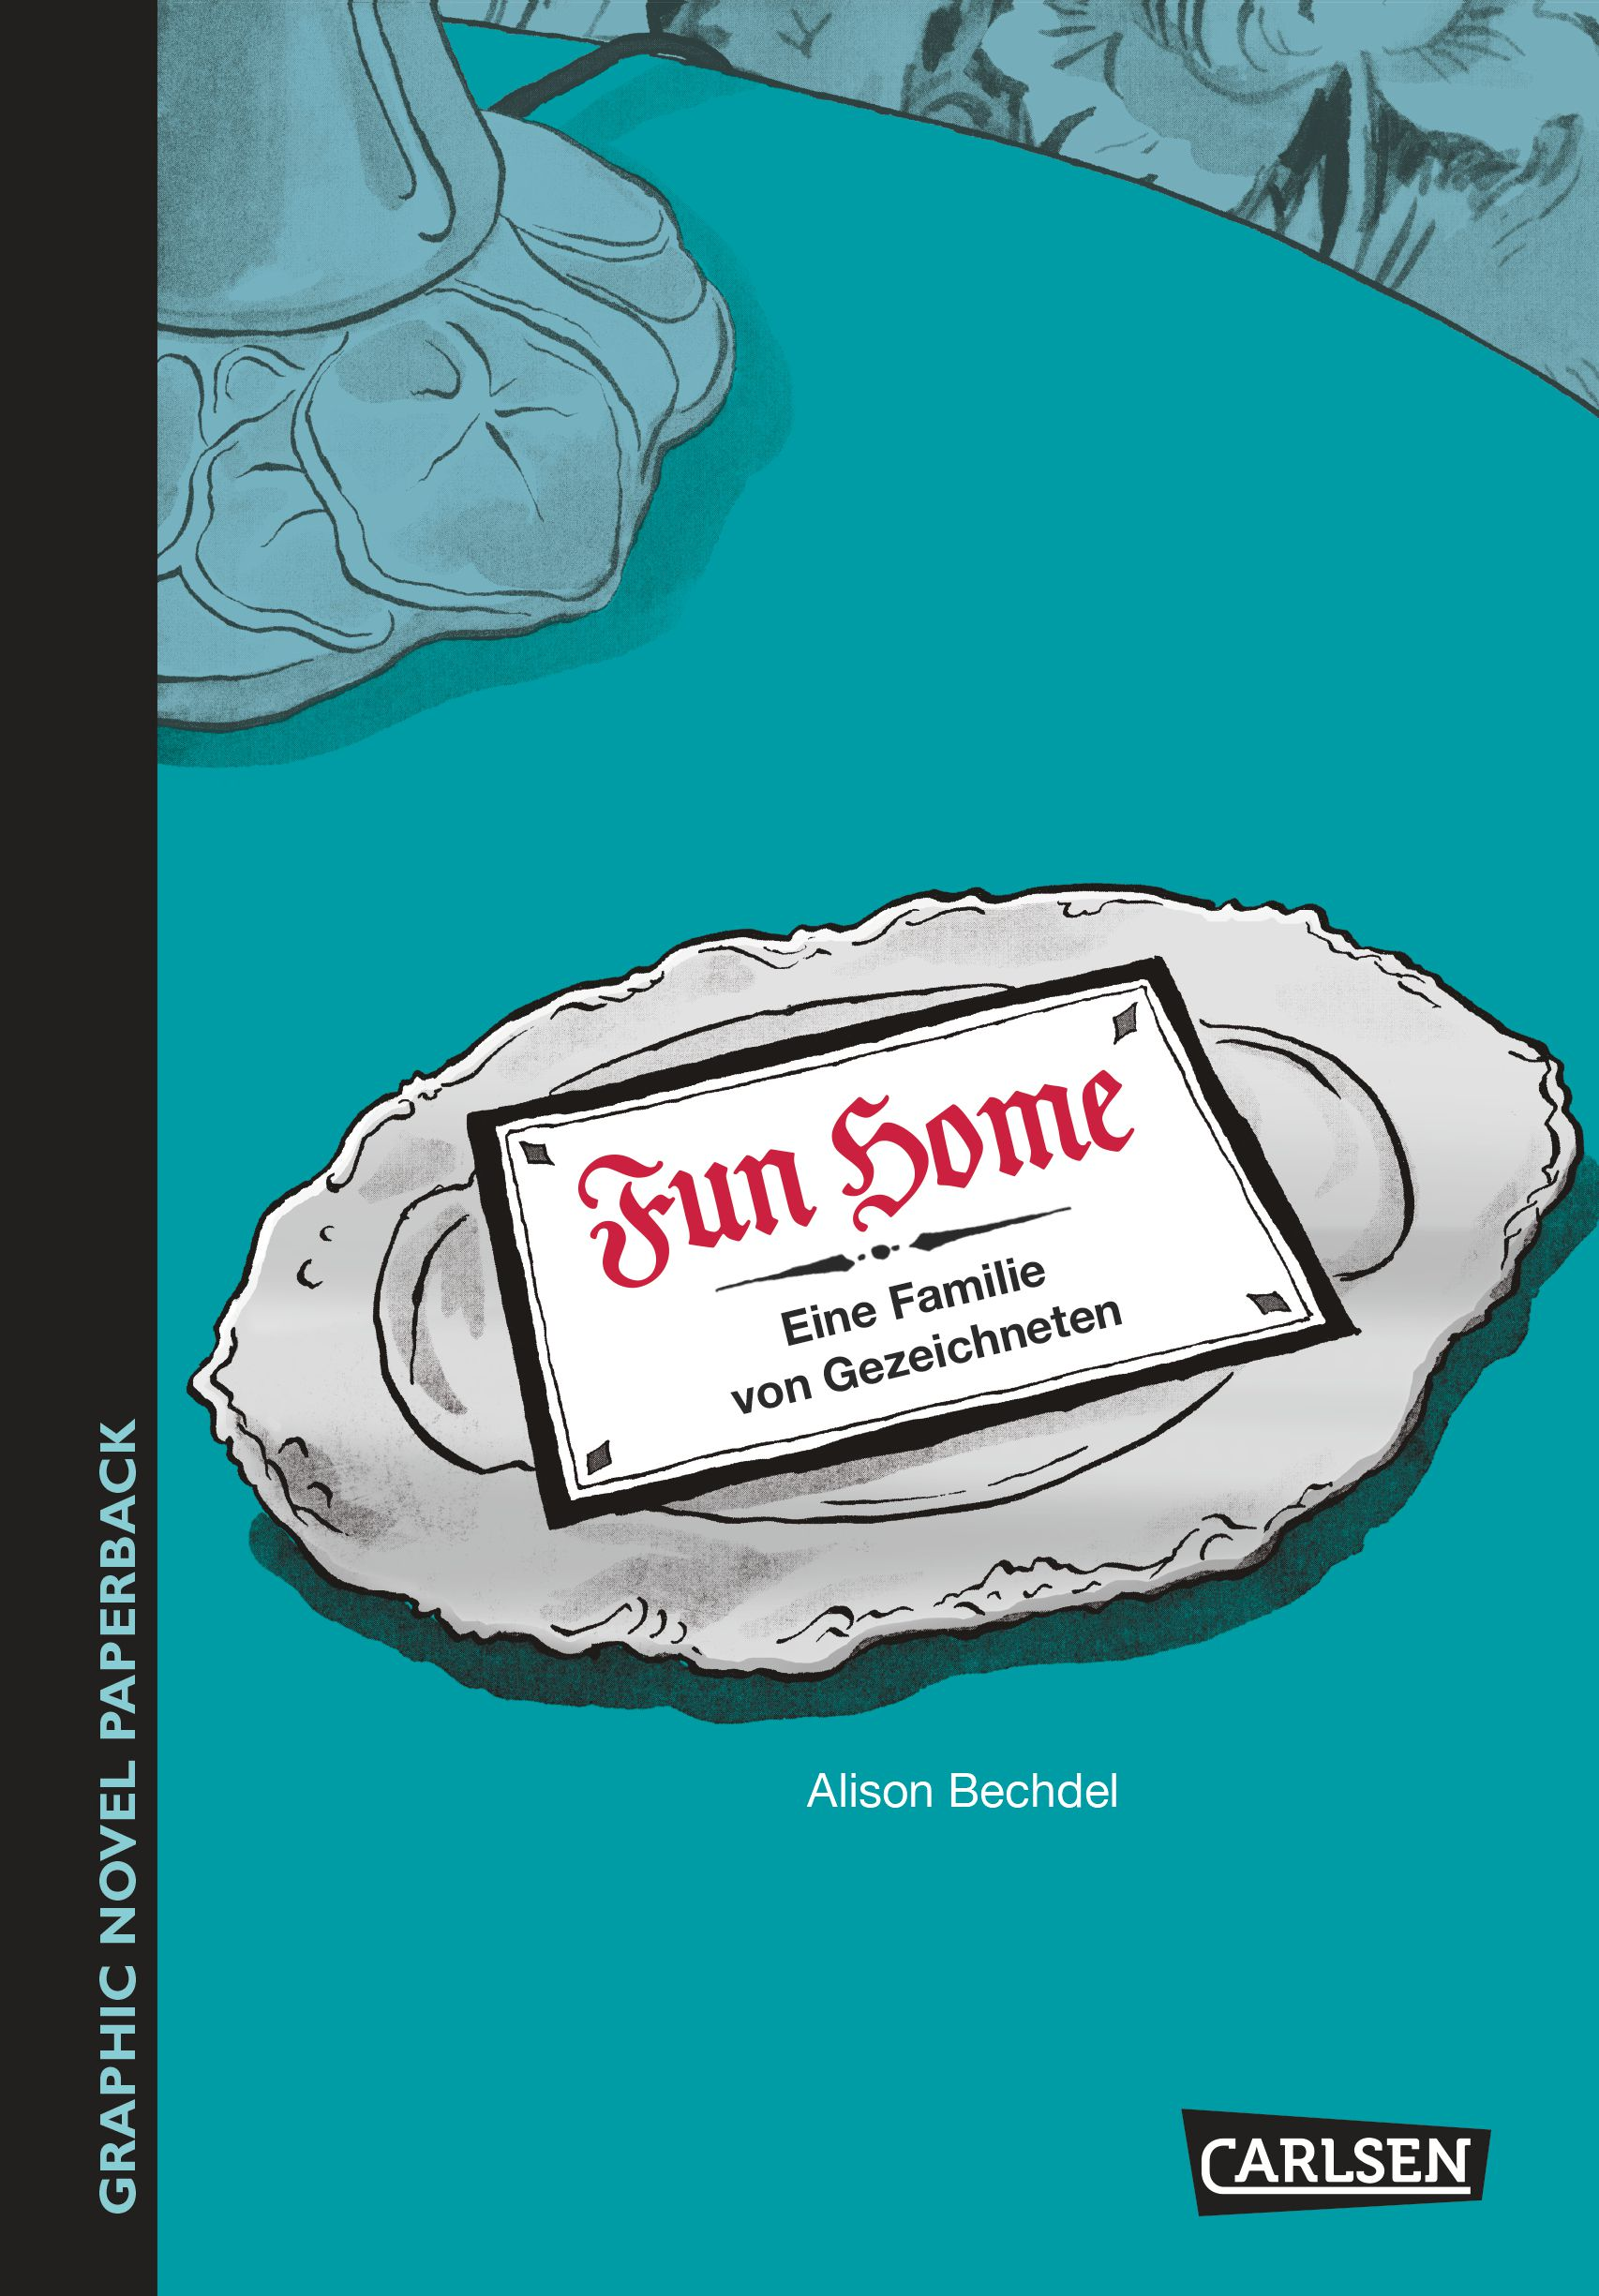 Alison Bechdel Graphic Novel paperback: Fun Home